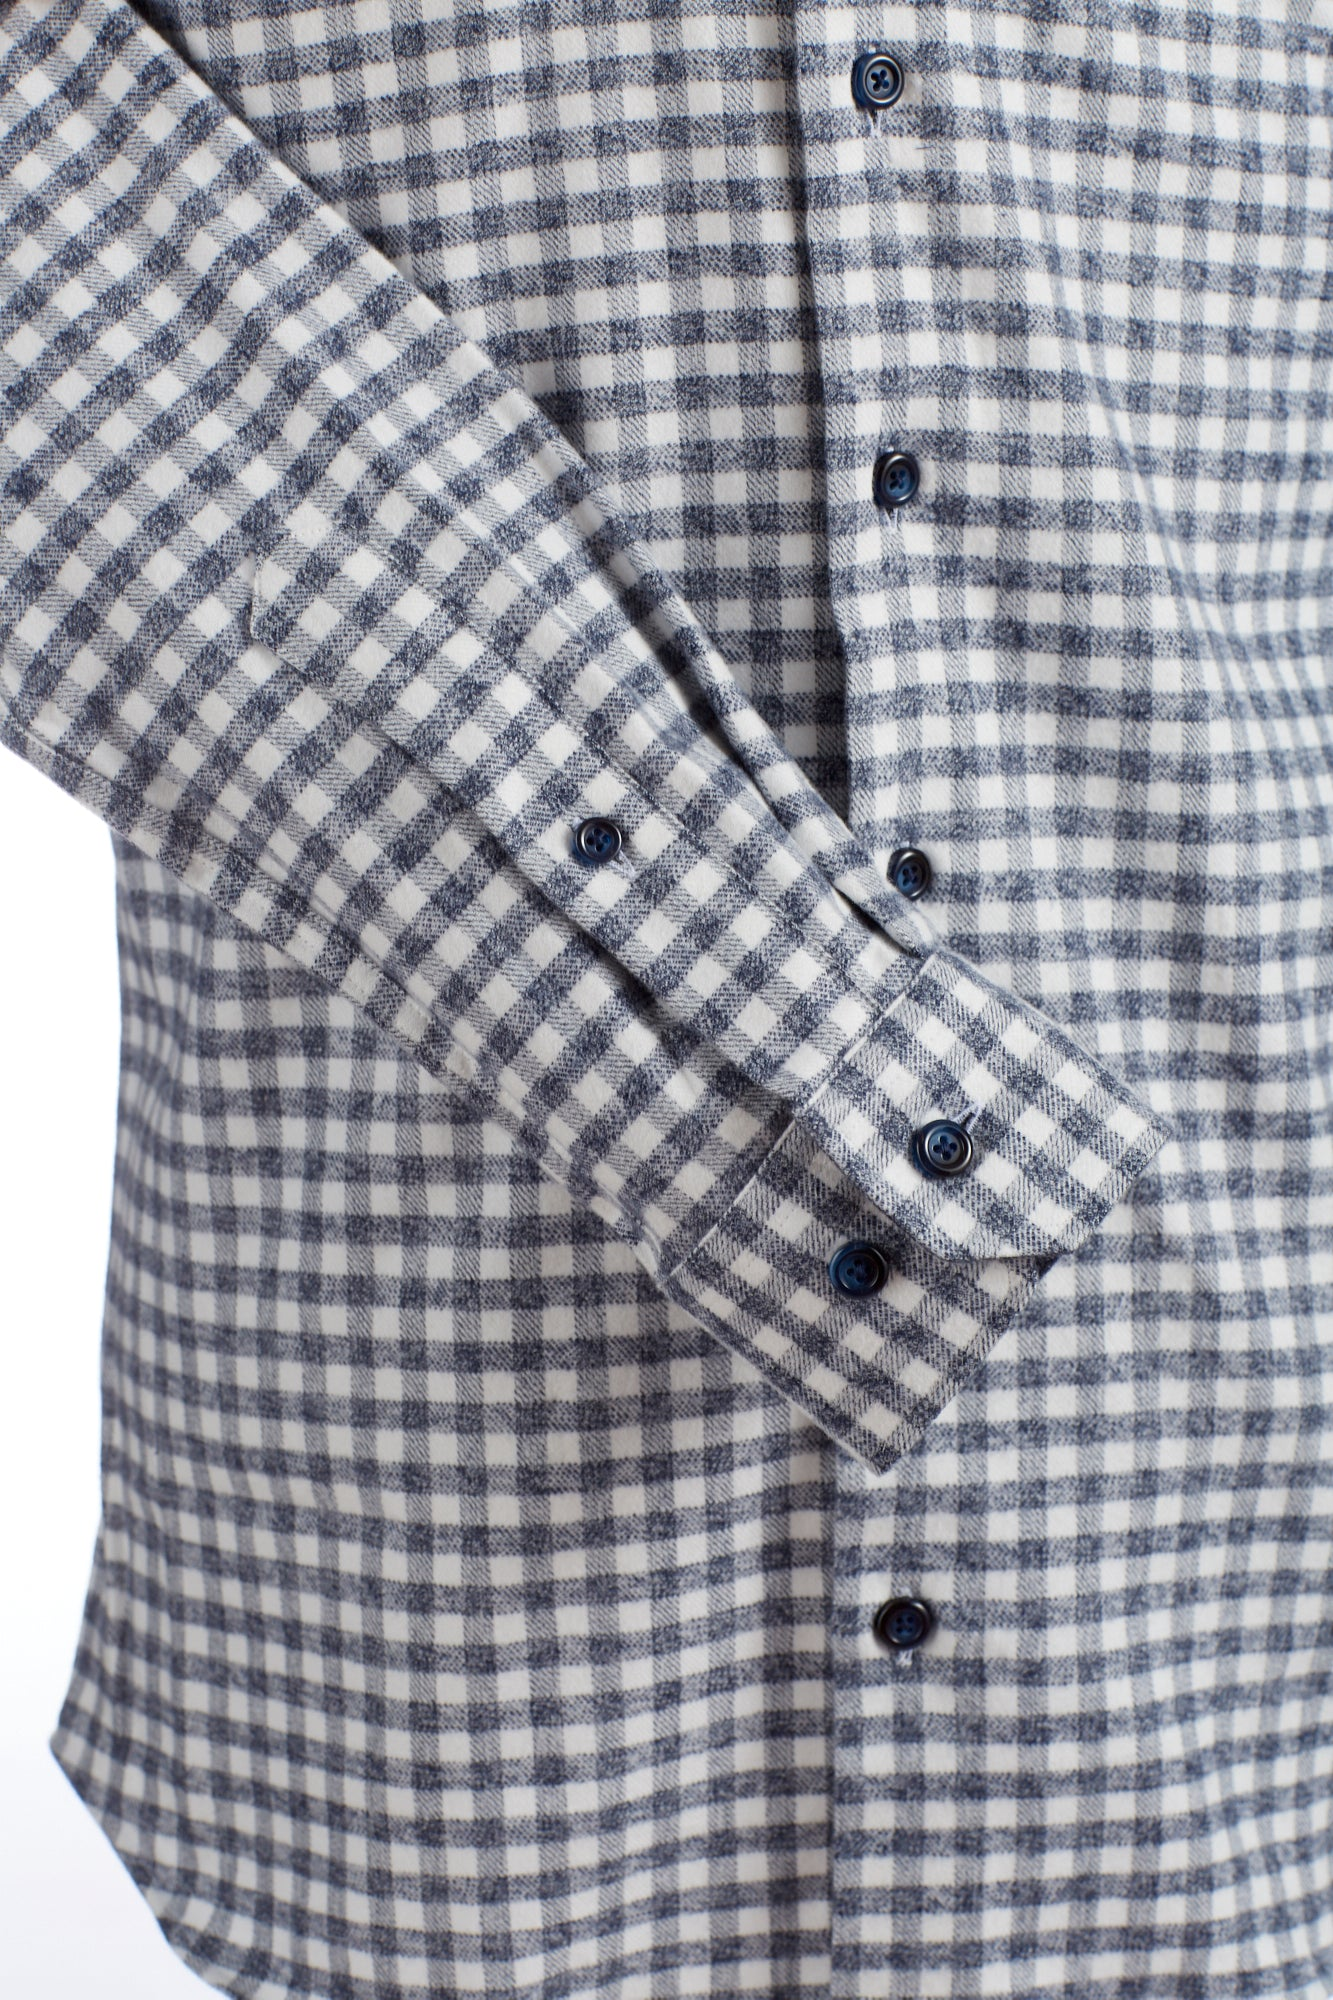 Blazer for Men Navy Flannel Check Shirt - Shirts - Blazer For Men - LALONDE's